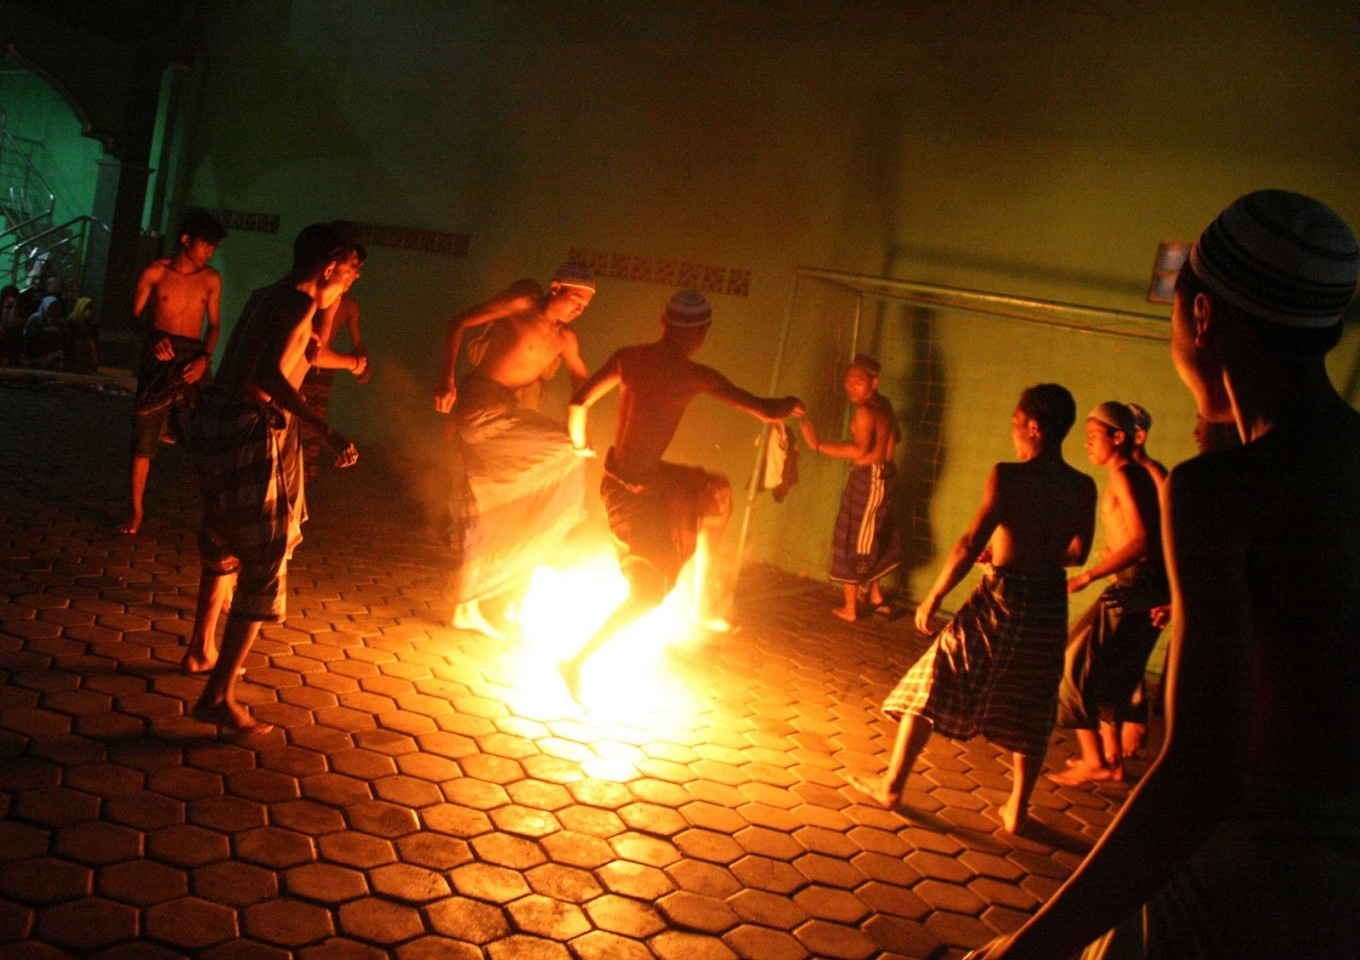 Fire soccer, a unique Ramadhan tradition of 'pesantren' students